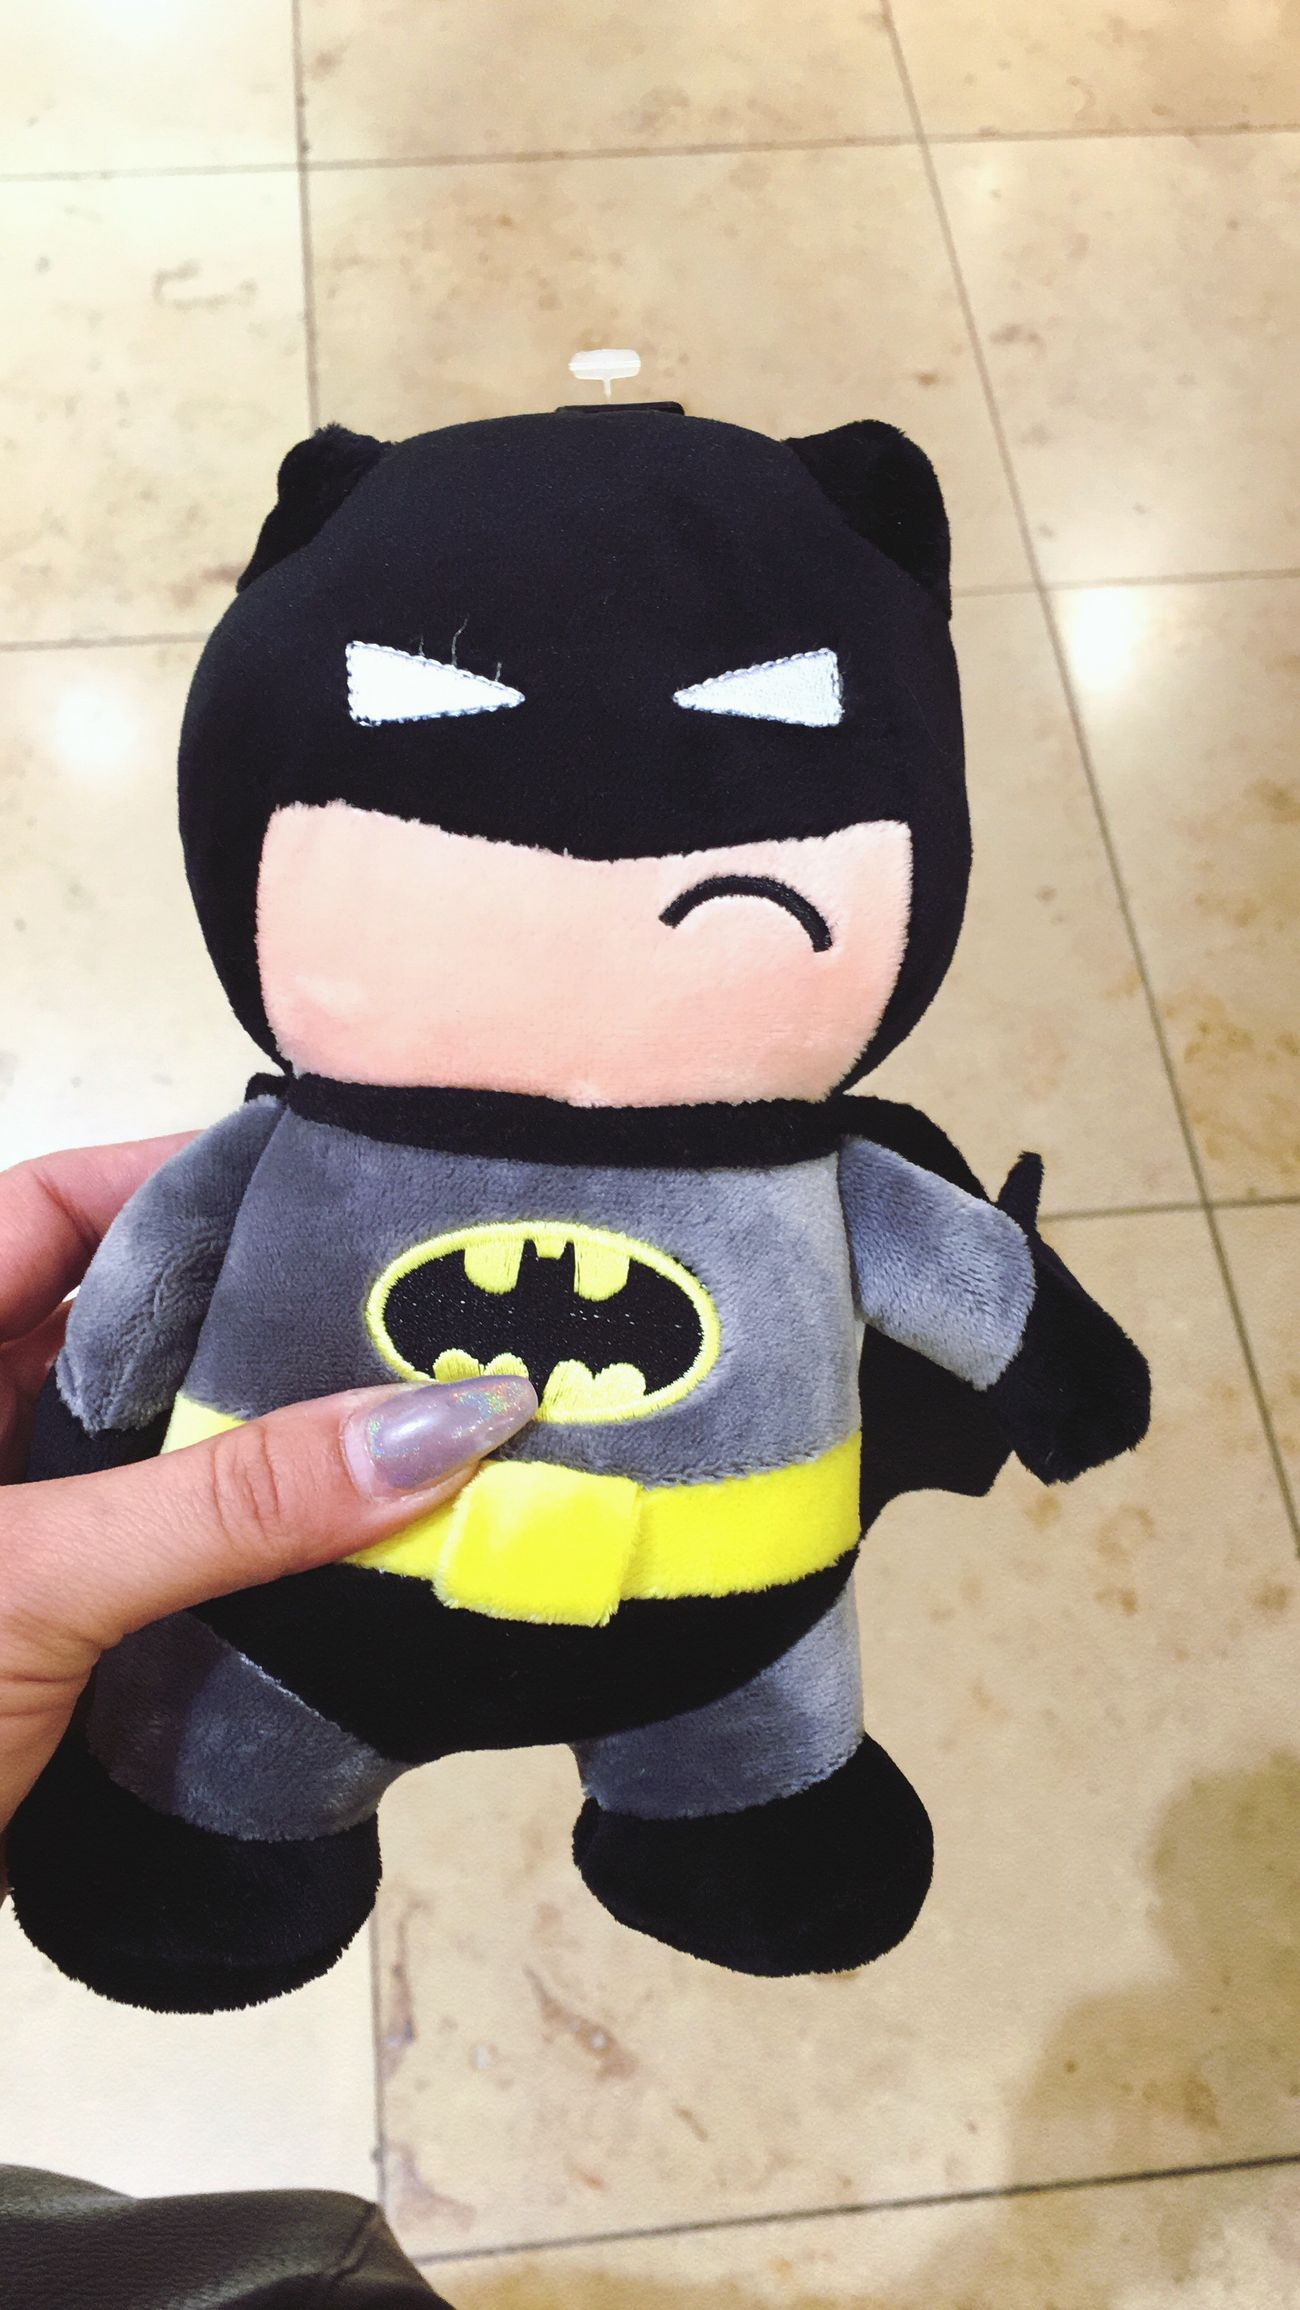 Human Hand Real People One Person Human Body Part Human Finger Holding Lifestyles Leisure Activity Day Outdoors Men Women Low Section Close-up People Batman Toy